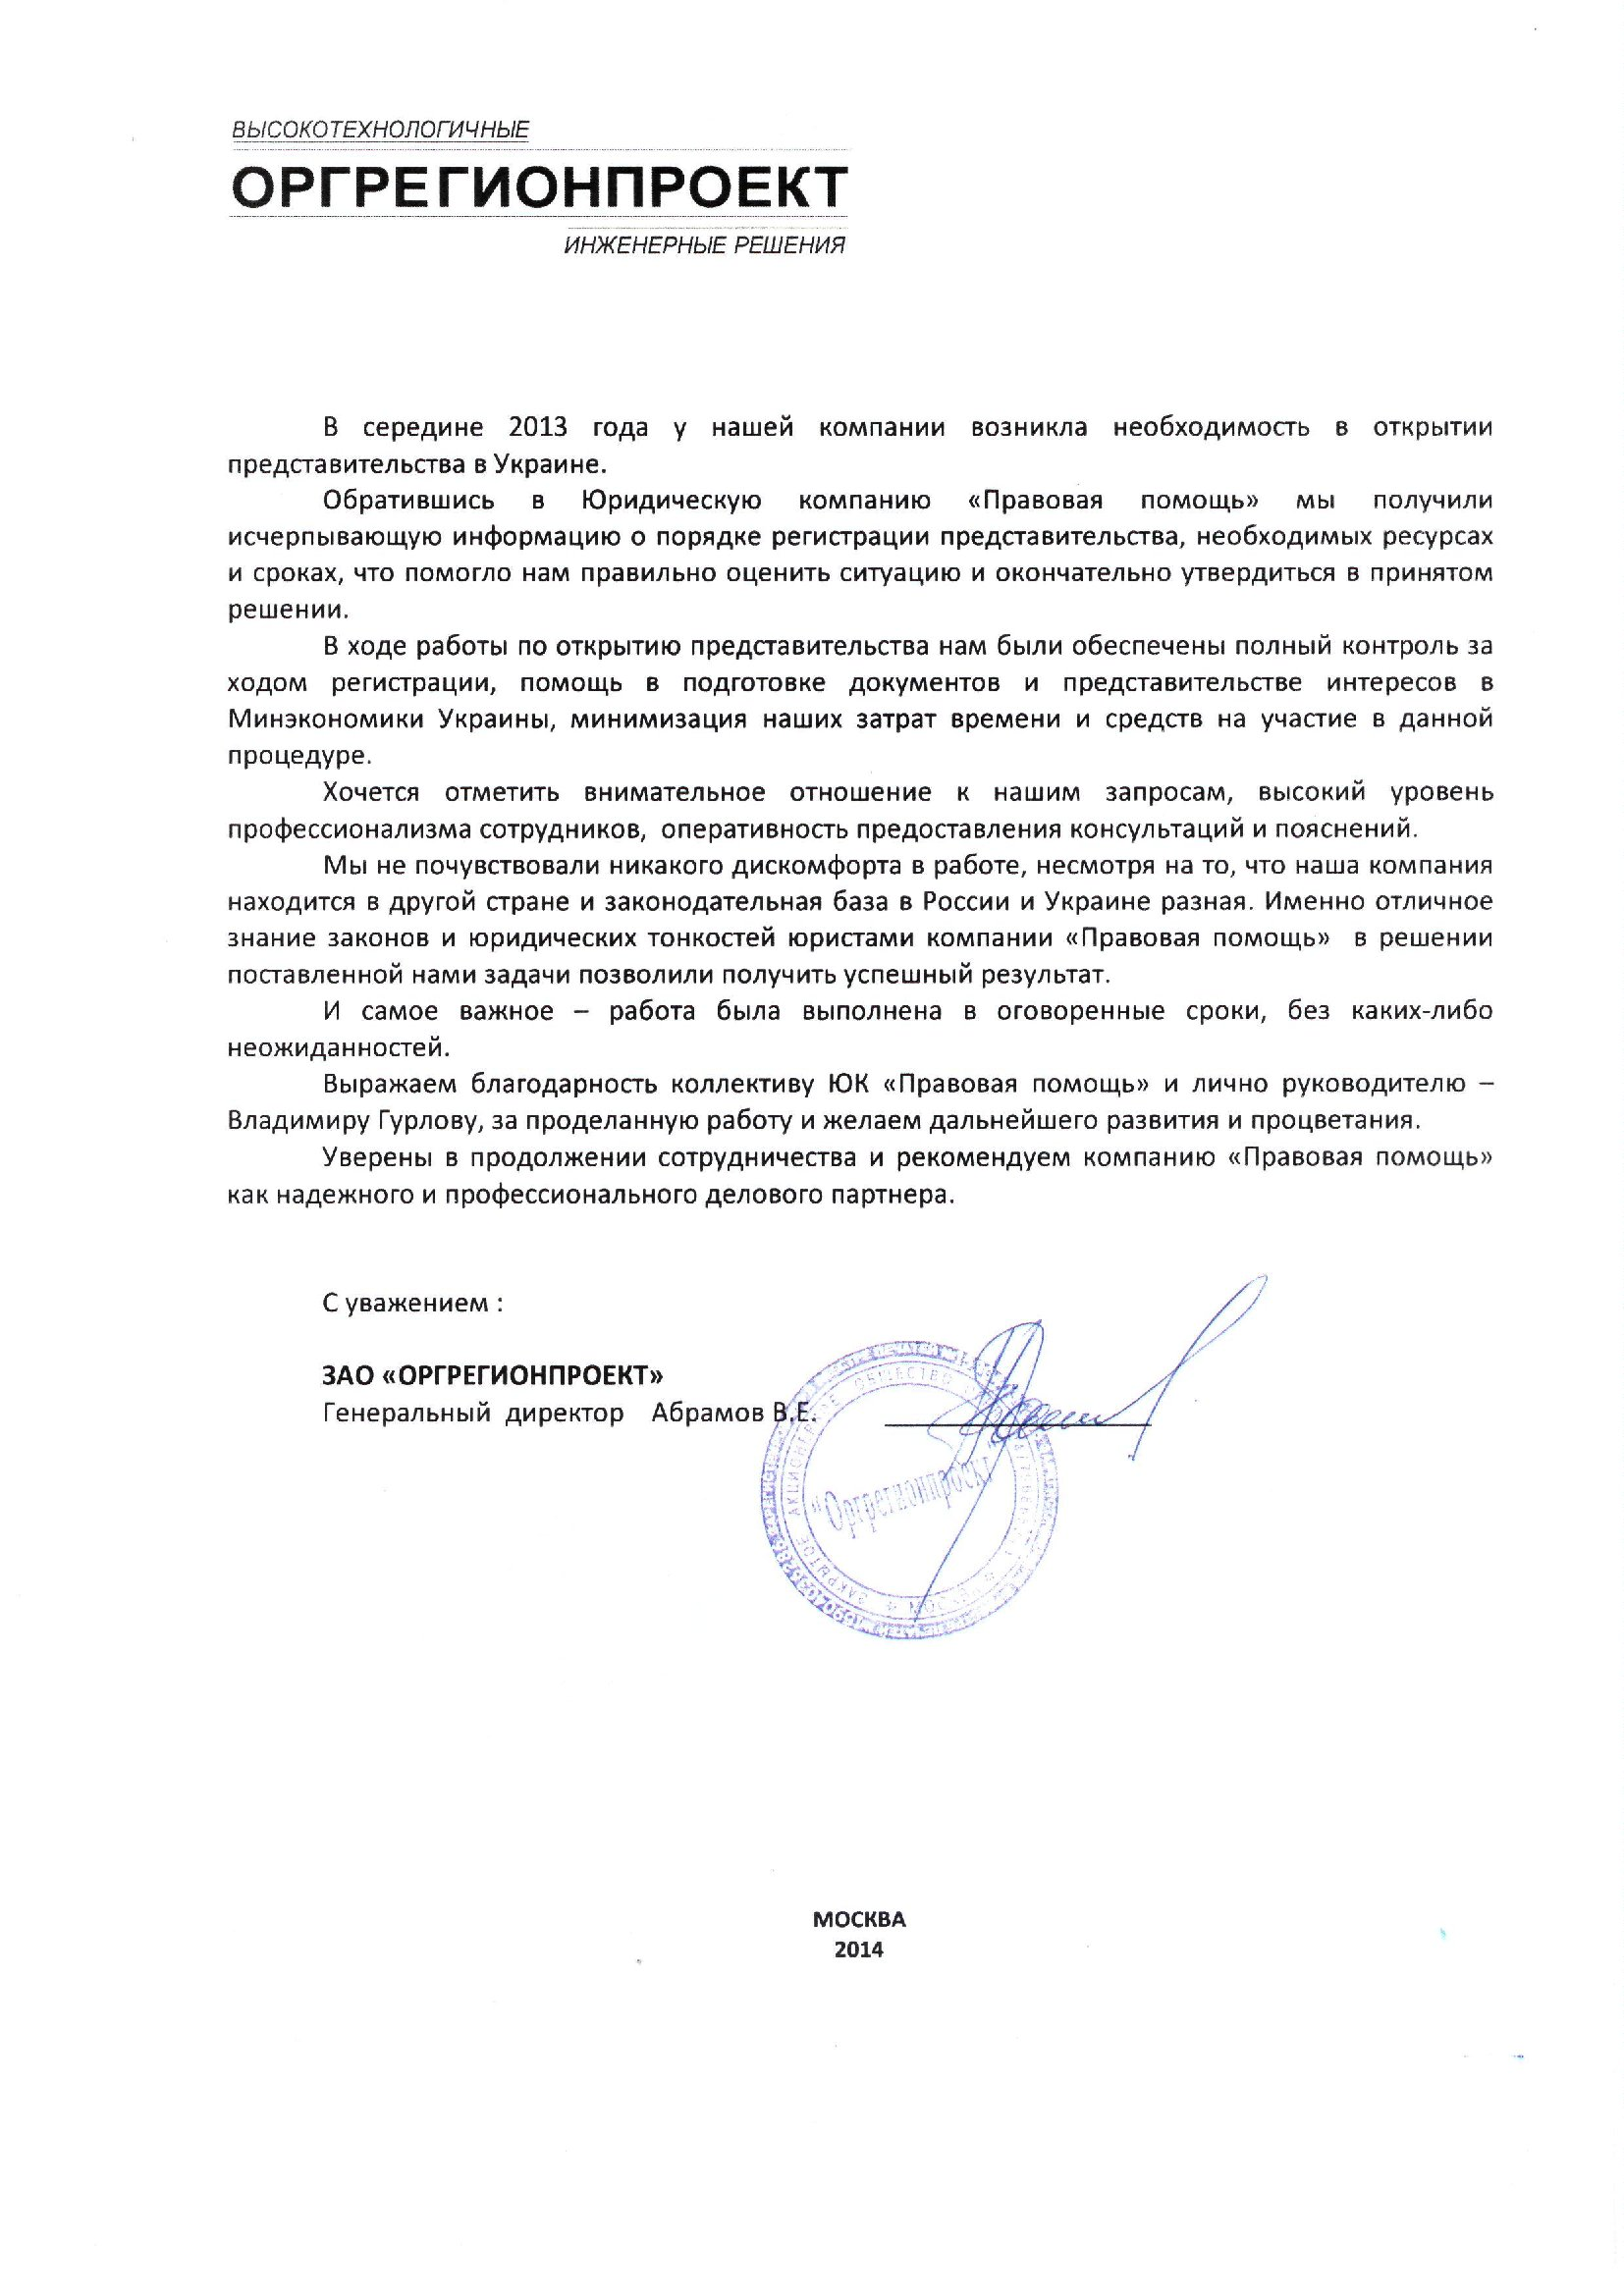 Receiving of official invitation letter for obtainment of general manager v abramov pjsc orgregionproekt stopboris Gallery